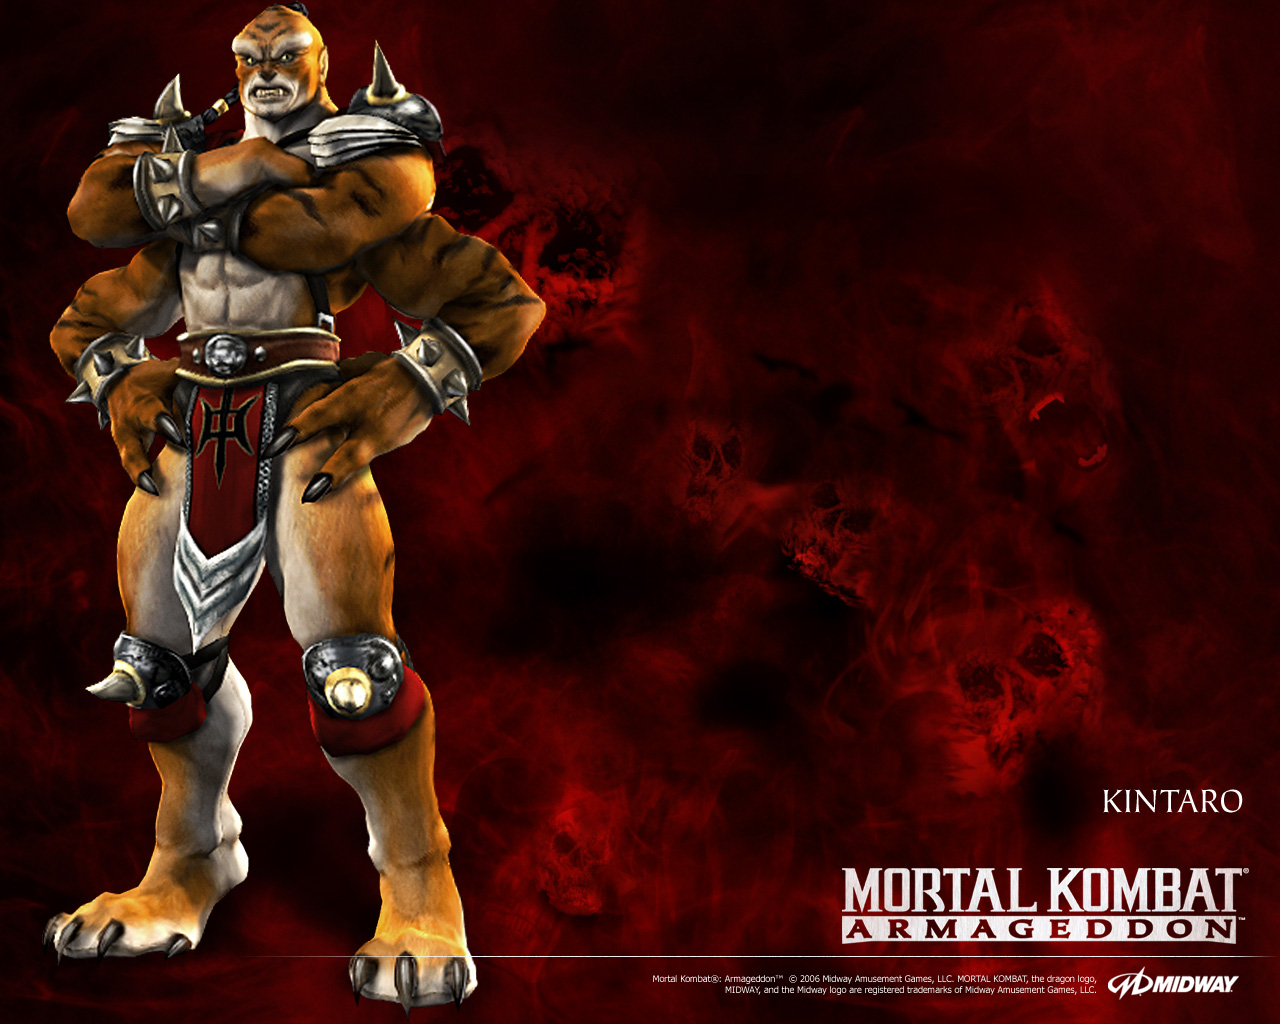 Here we have Mortal Kombat: Armageddon wallpaper, created by either me ...